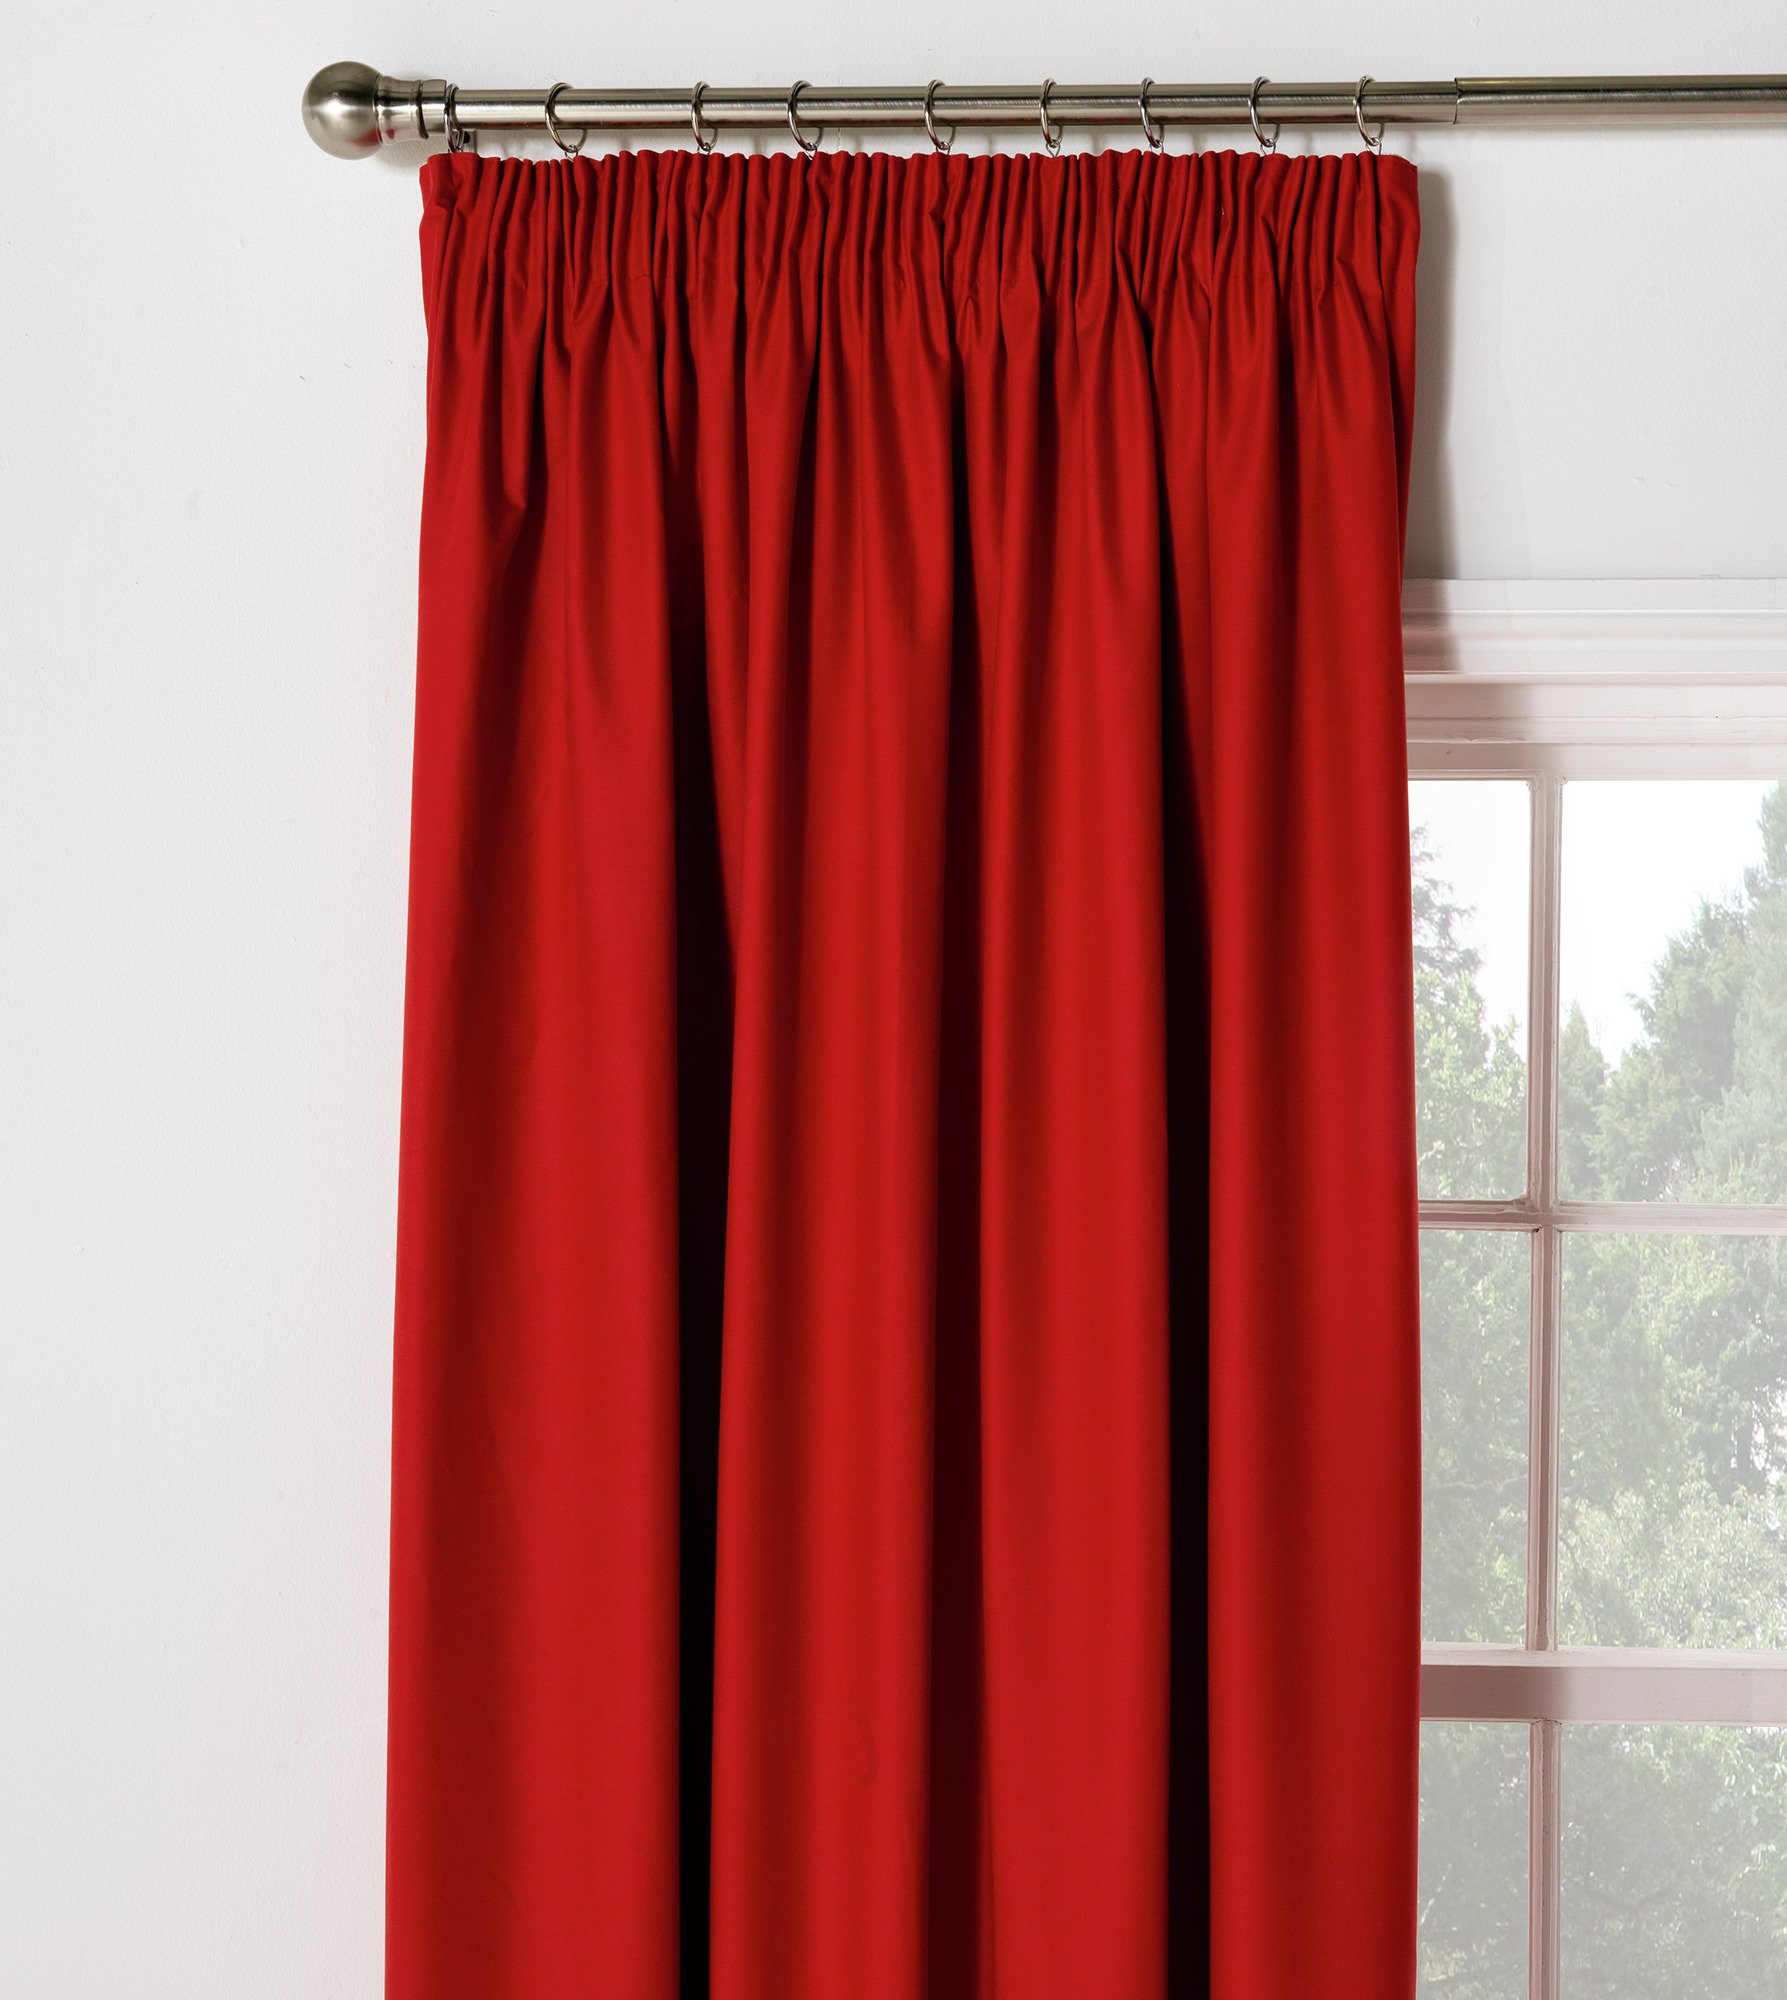 ColourMatch Blackout Thermal Curtain - 117x183cm - Poppy Red